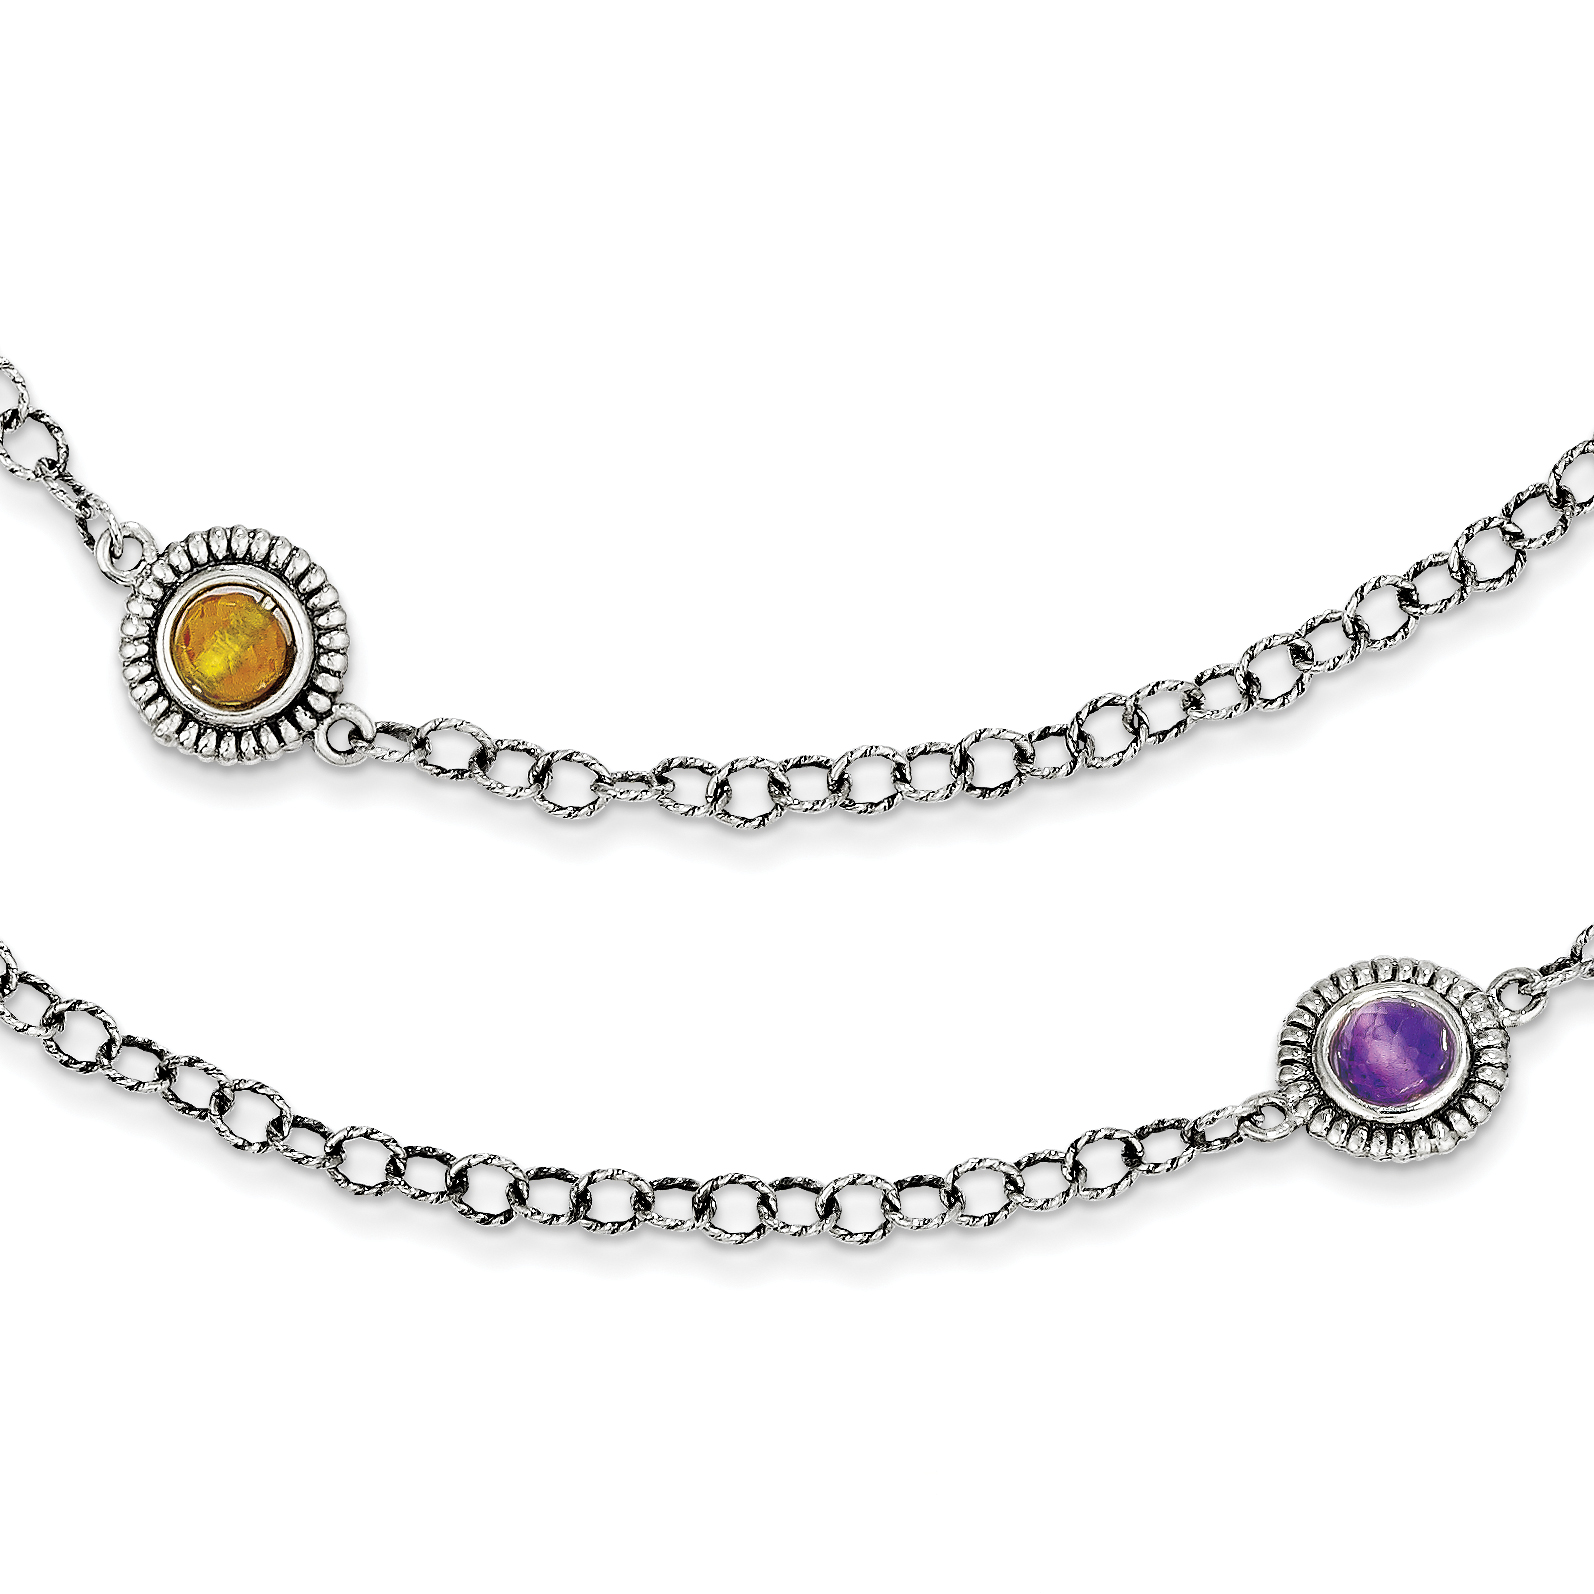 Roy Rose Jewelry Sterling Silver and 14K Gold Amethyst, Blue Topaz, Citrine Necklace ~ Length 42'' inches by